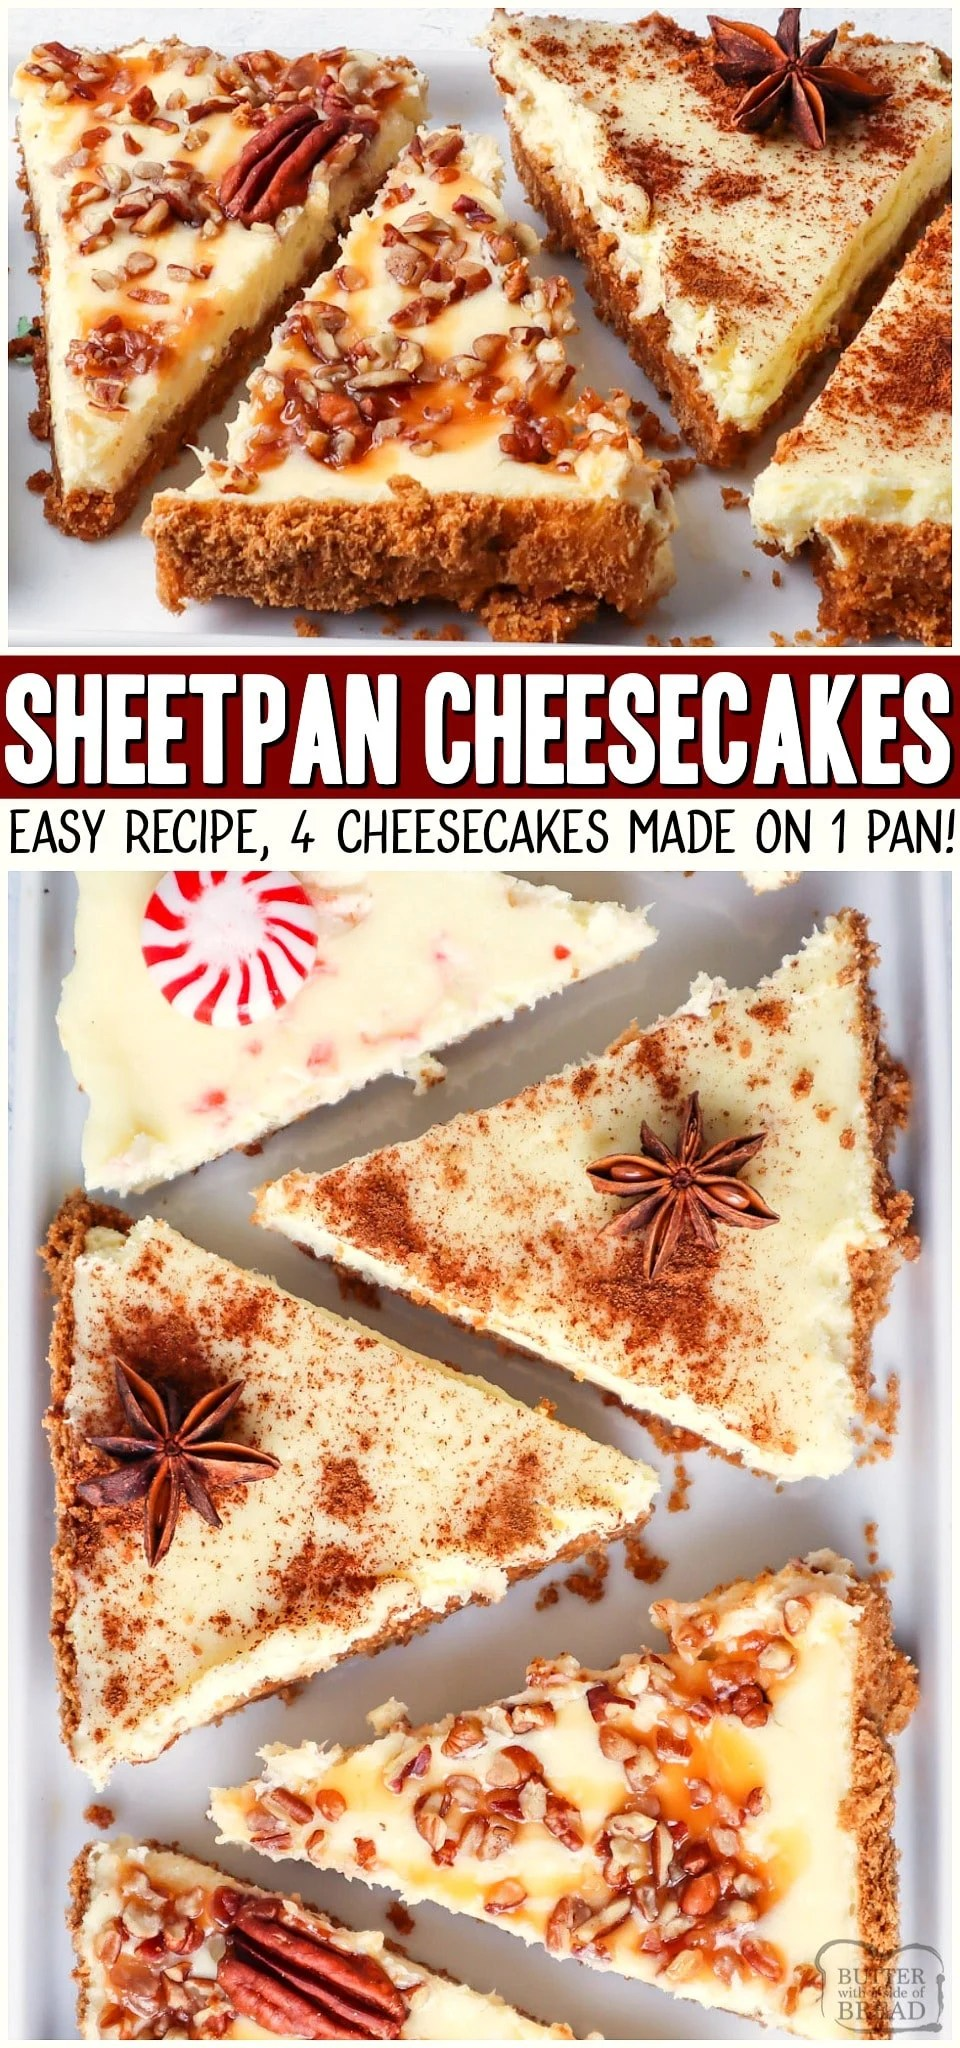 This easy sheet pan cheesecake recipe is one to remember. With just one simple graham cracker crust and a basic cheesecake batter we can create holiday cheesecake bars with 4 flavor options to choose from!  1 sheet pan and 4 delicious flavors of homemade cheesecake made conveniently on a sheet pan. Serve it up at your next holiday party and watch them disappear! #cheesecake #sheetpan #easyrecipe #dessert #holidays #Christmas #cheesecake #recipe from BUTTER WITH A SIDE OF BREAD